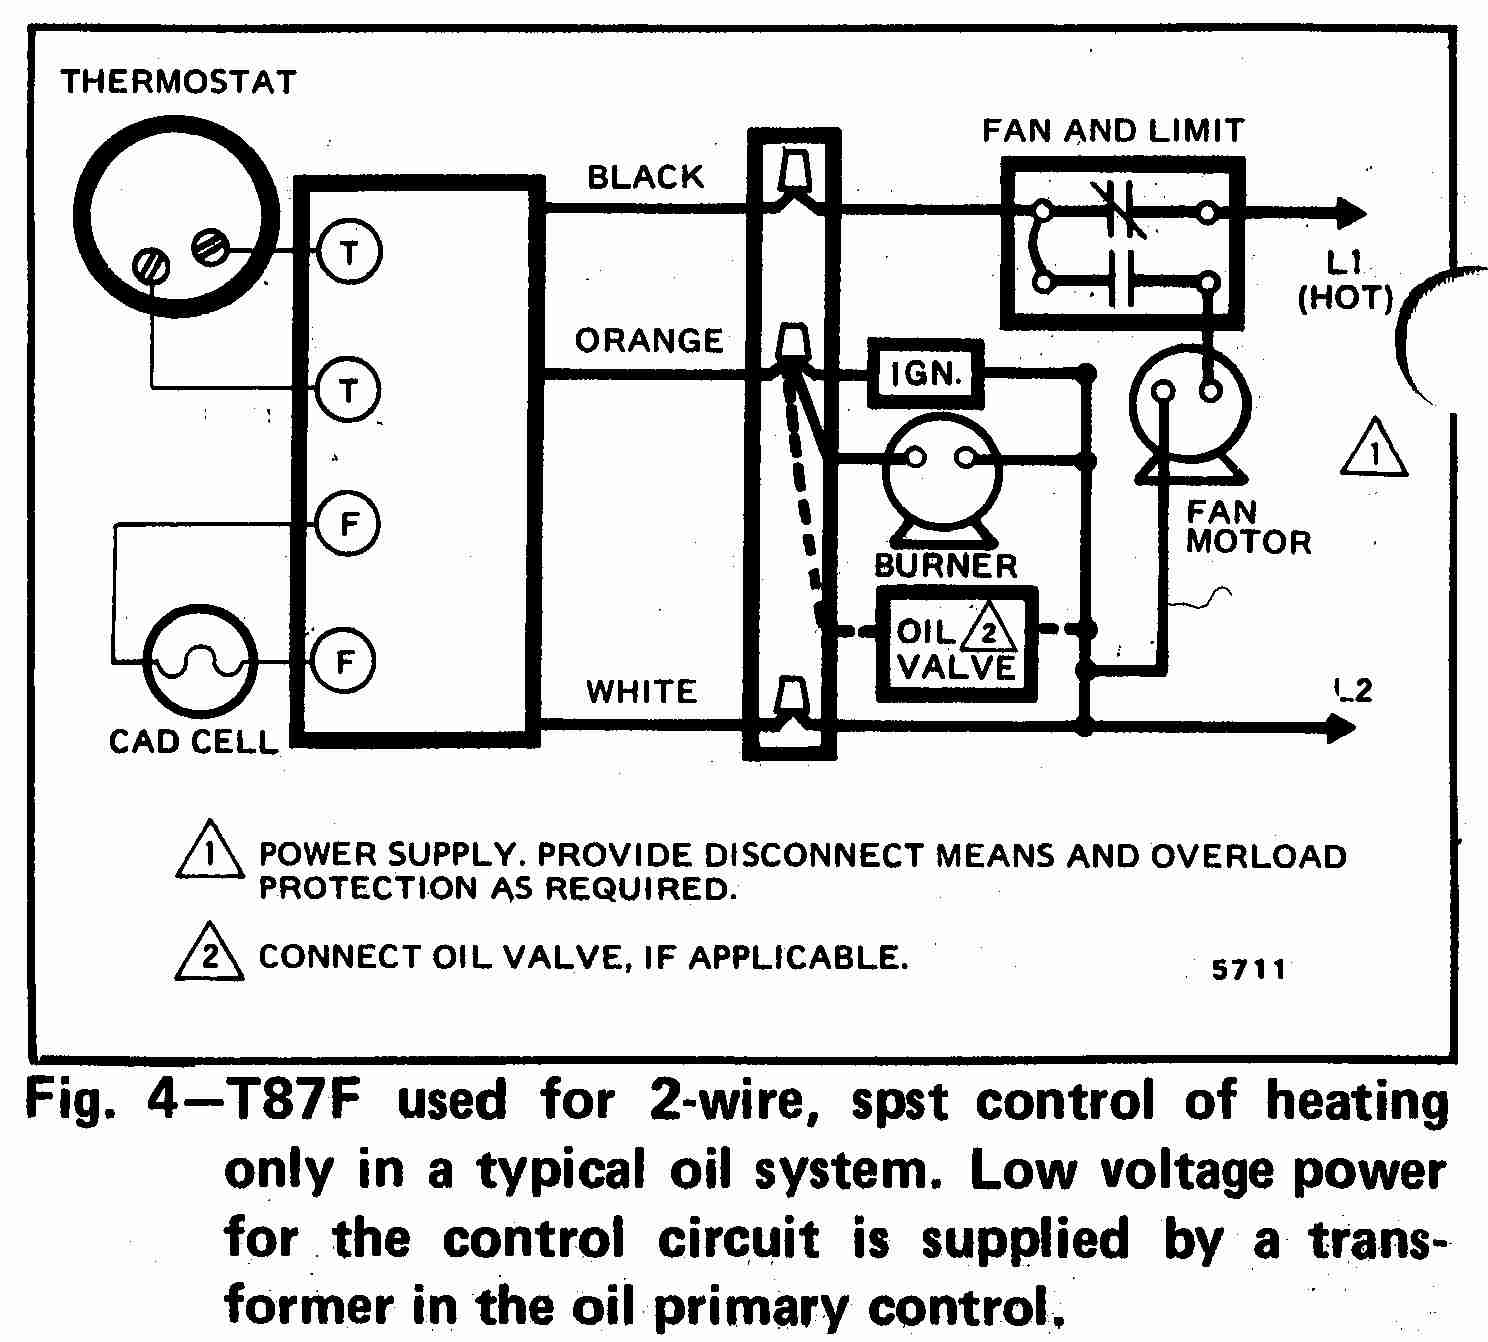 TT_T87F_0002_2W_DJF room thermostat wiring diagrams for hvac systems gas heater wiring diagram at crackthecode.co